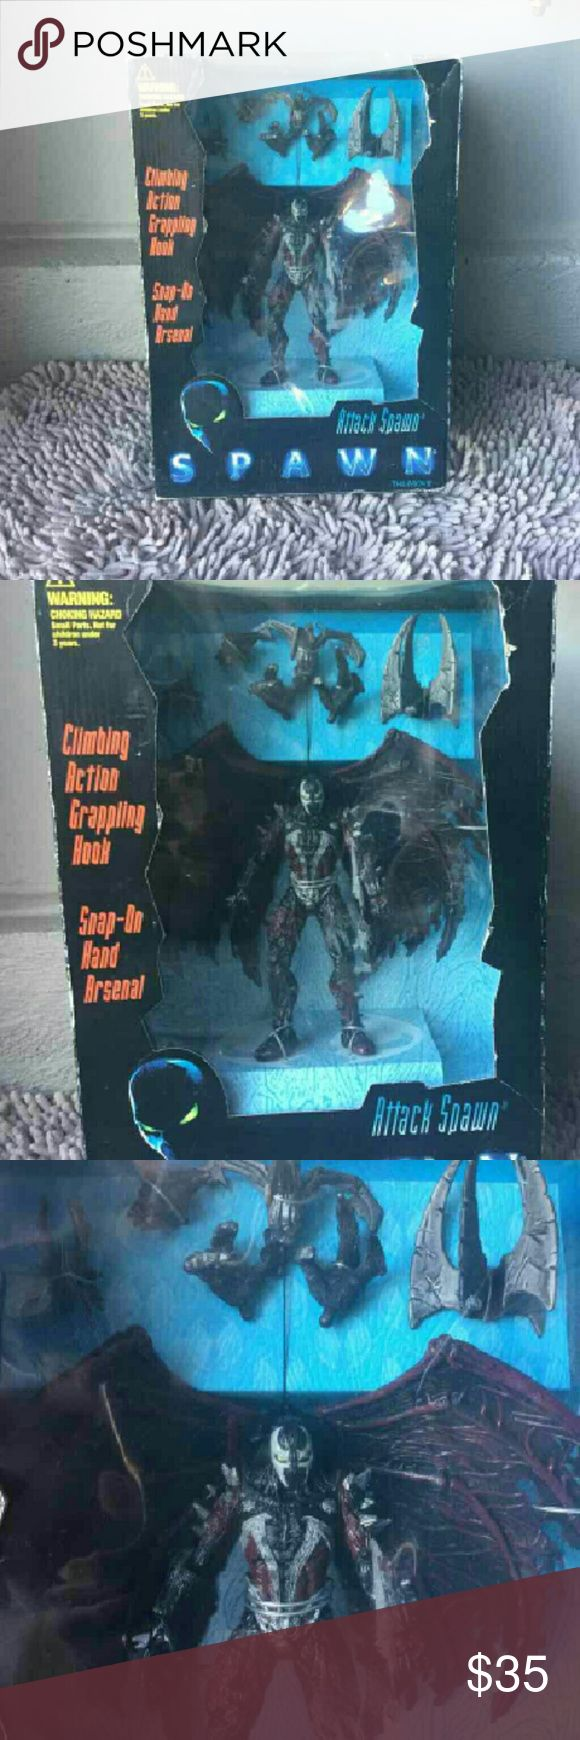 Spawn Attack Brand new unopened box McFarlane/spawn Attack Spawn 1997, box have edge water.thanks. Mcfarlane Other